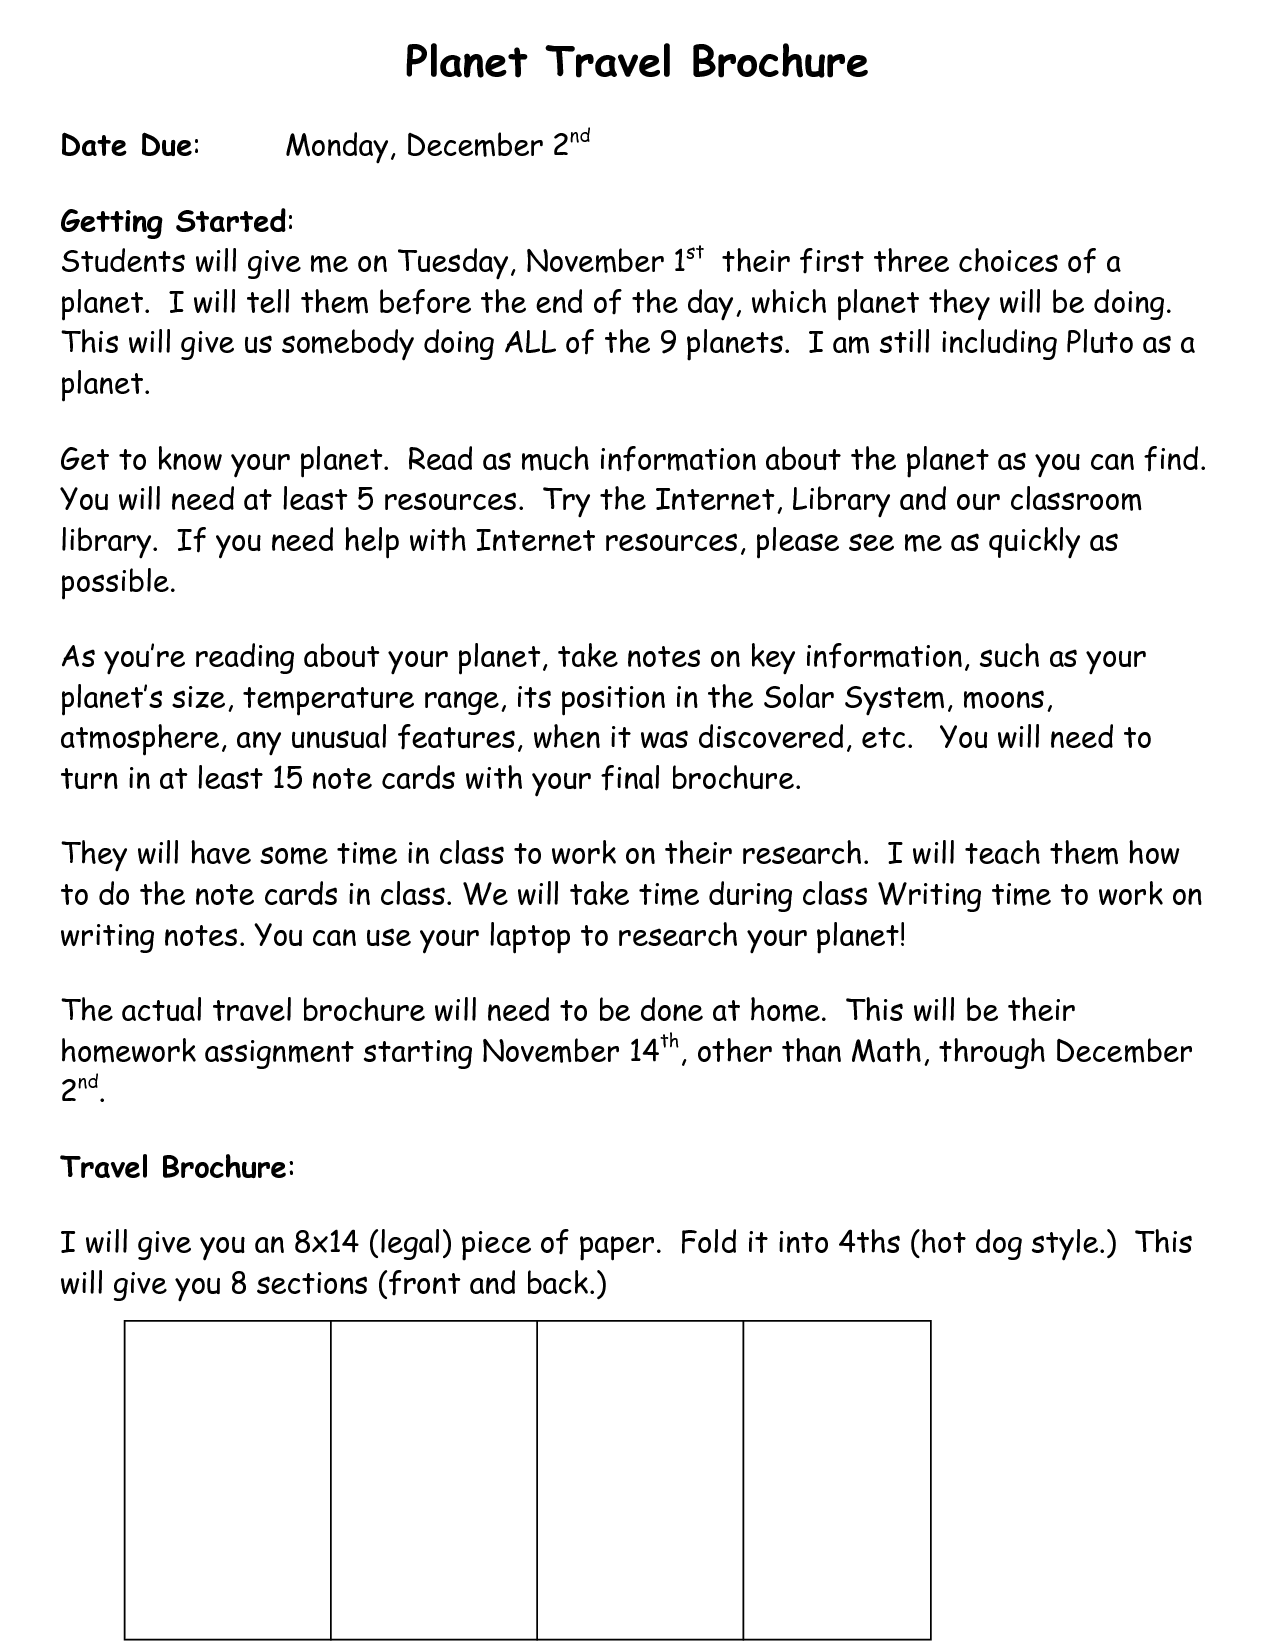 planet brochure template - planet travel brochure doc informational writing